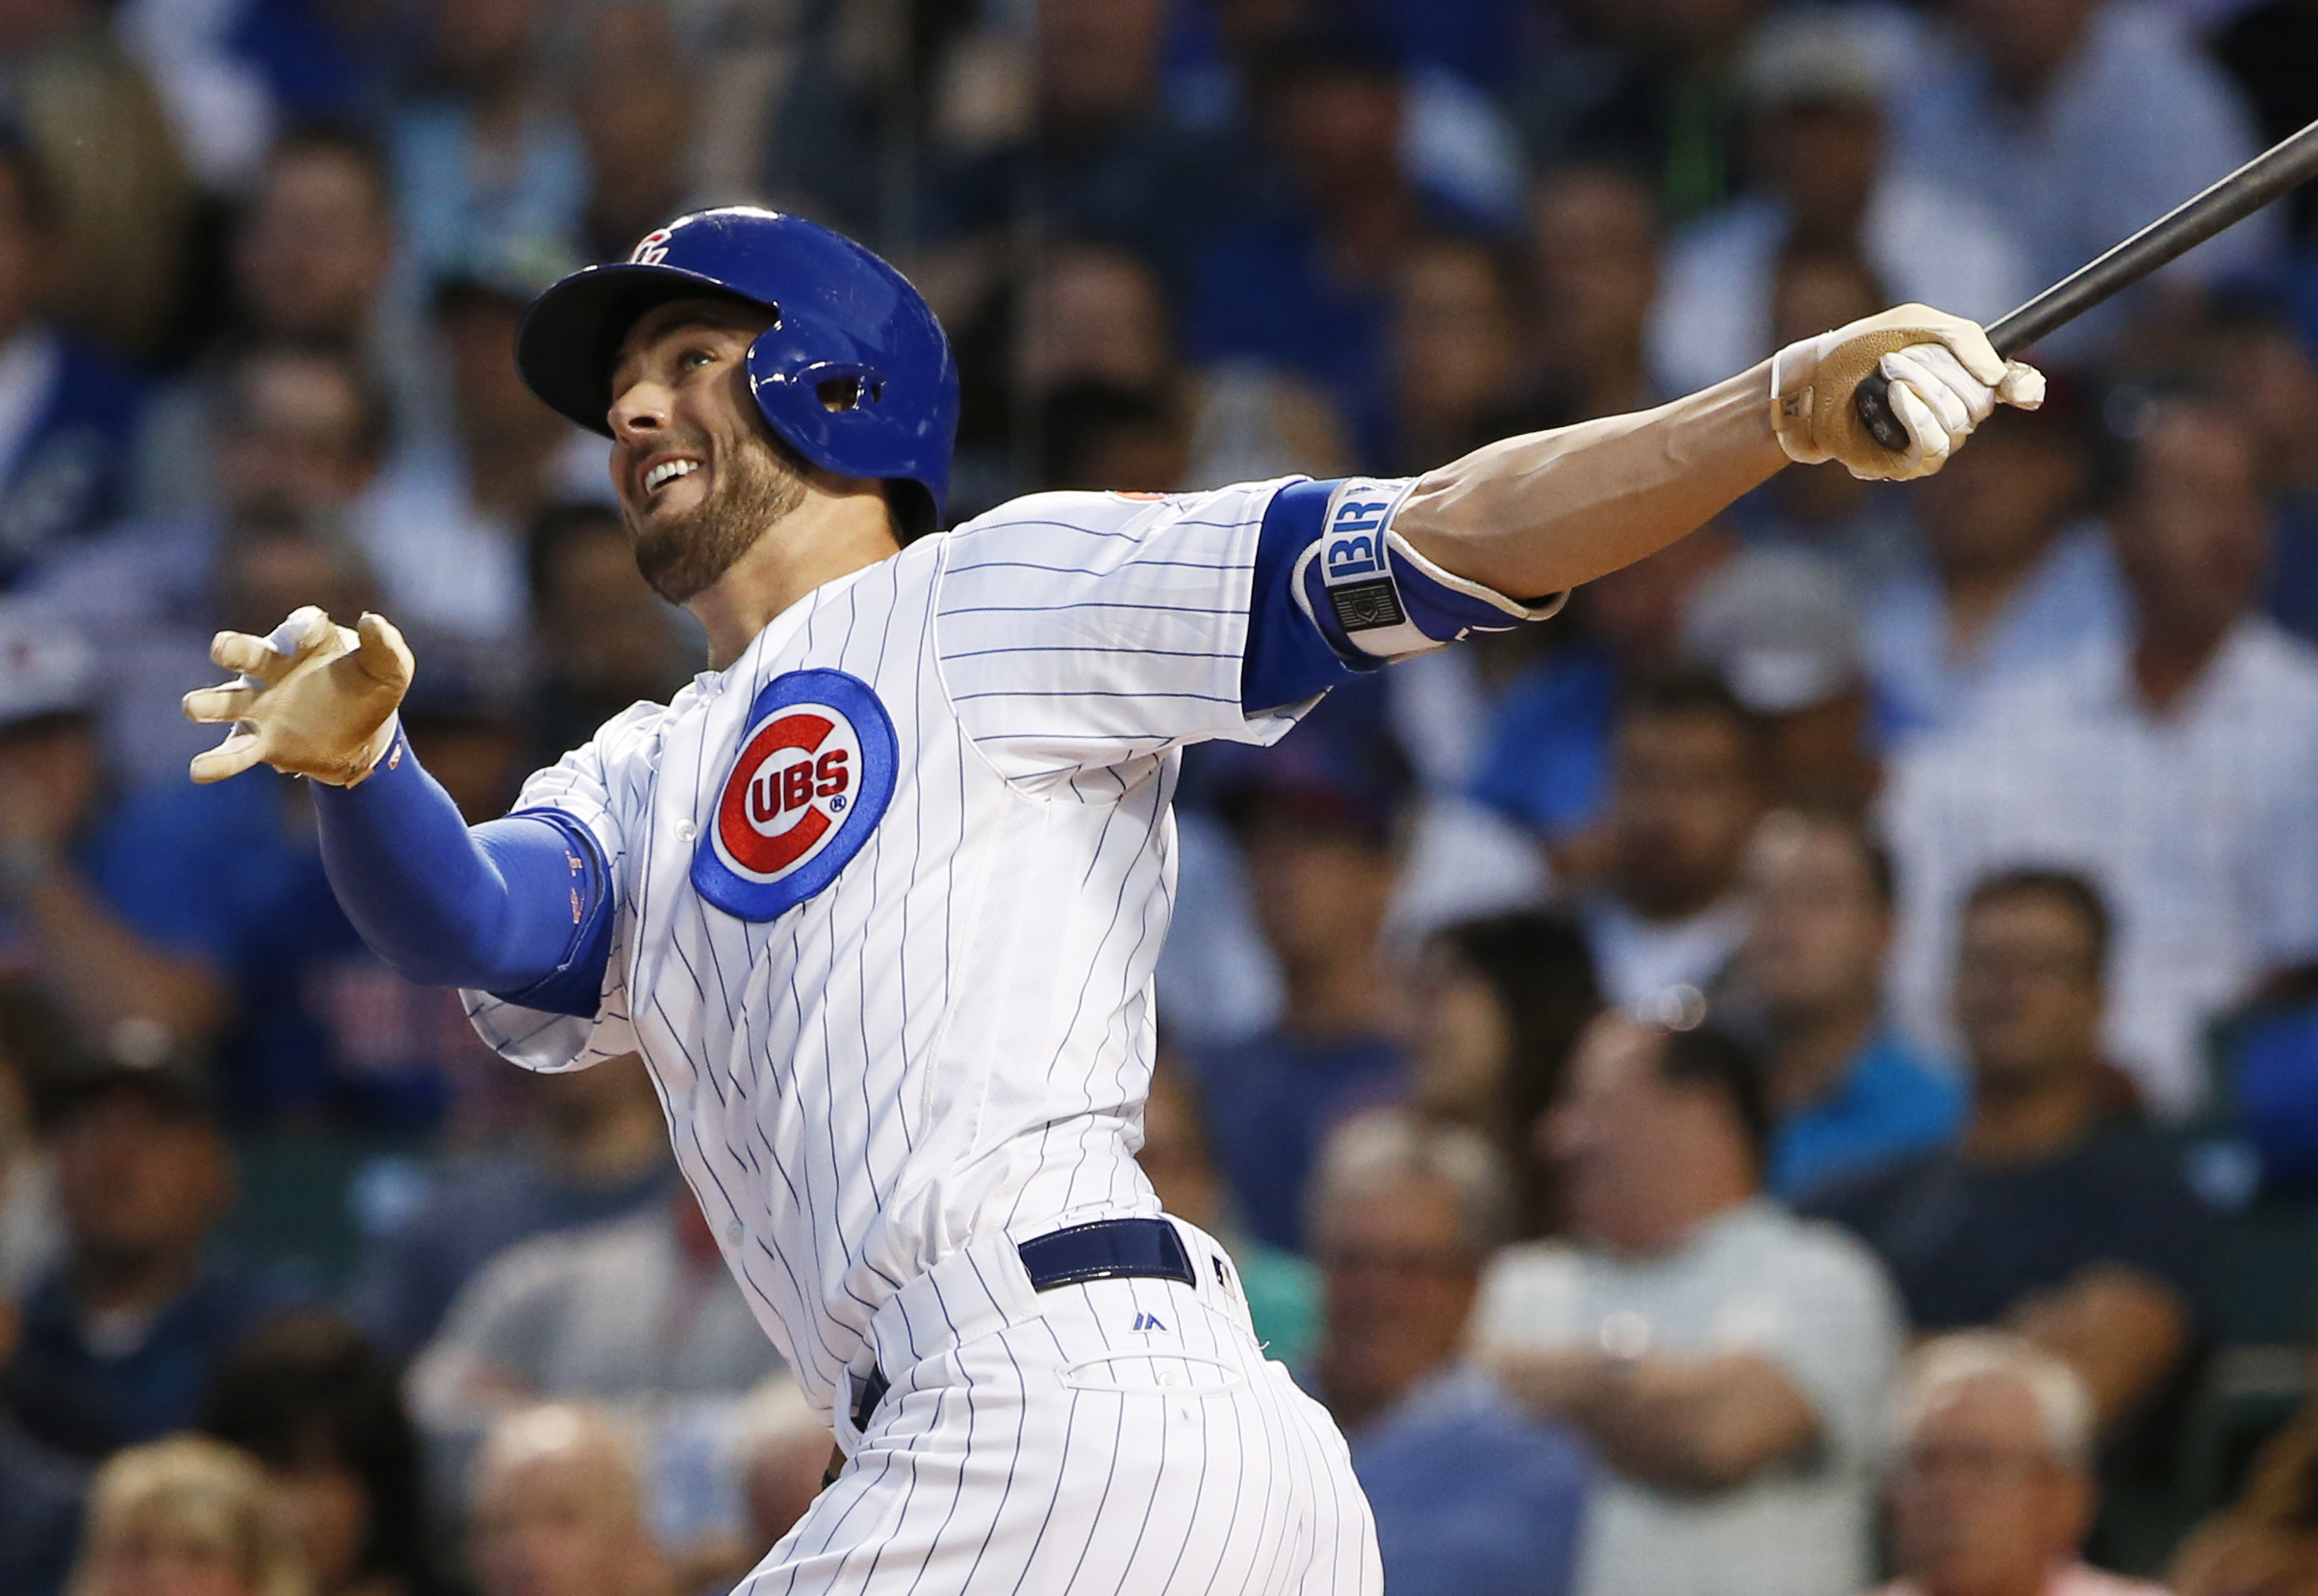 FILE - In this Aug. 31, 2016, file photo, Chicago Cubs' Kris Bryant follows through on a solo home run during the first inning of a baseball game against the Pittsburgh Pirates, in Chicago. Bryant, Bryce Harper and Big Papi are just a few of the big-name